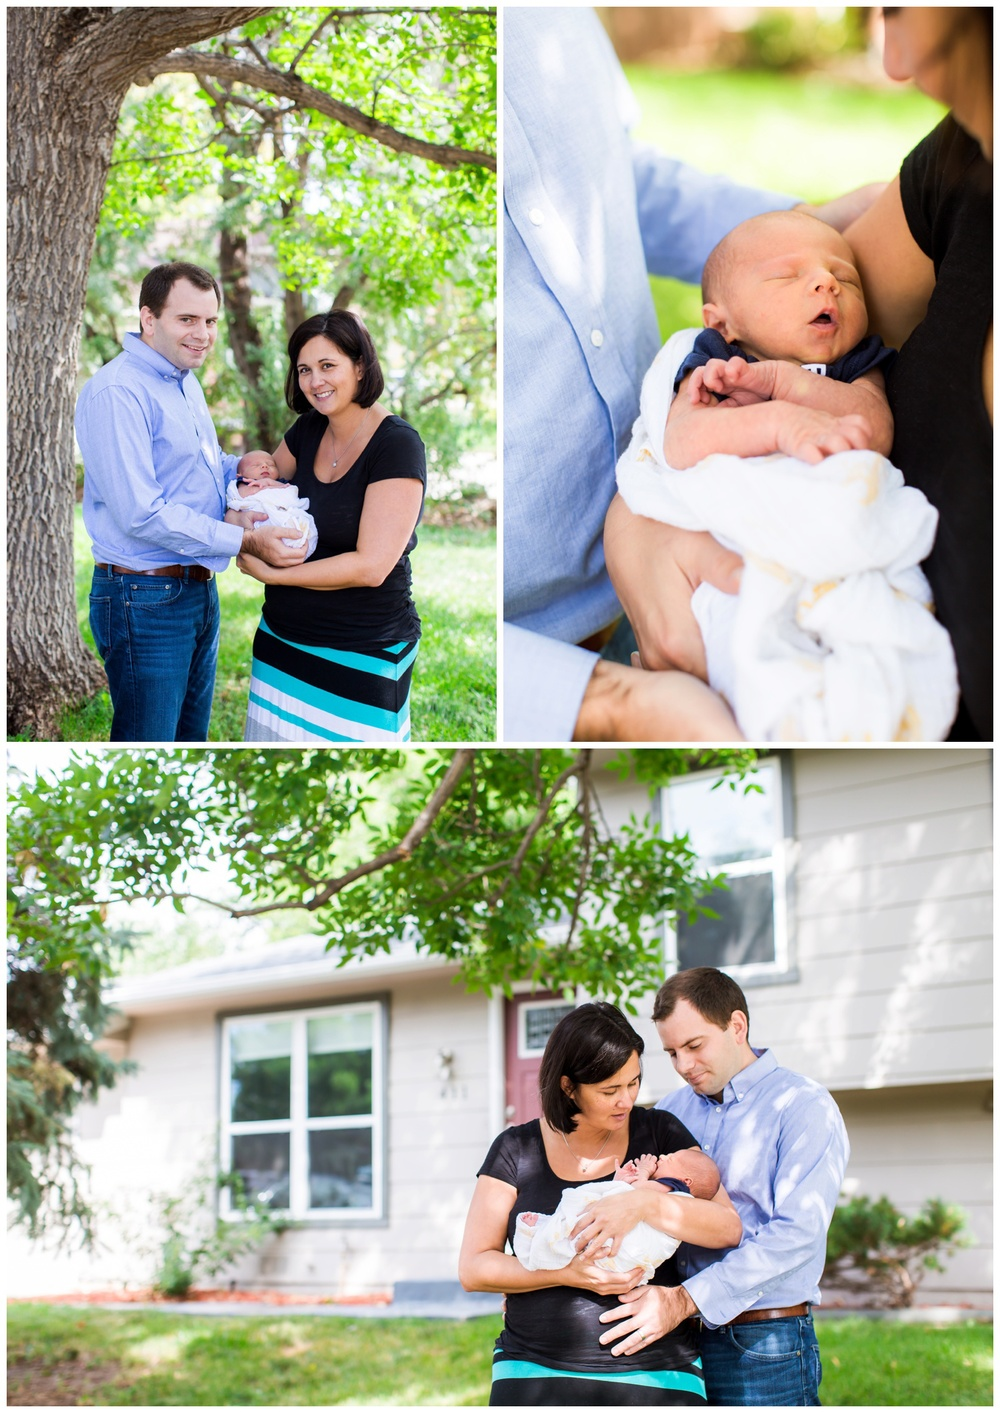 newborn photography002.jpg